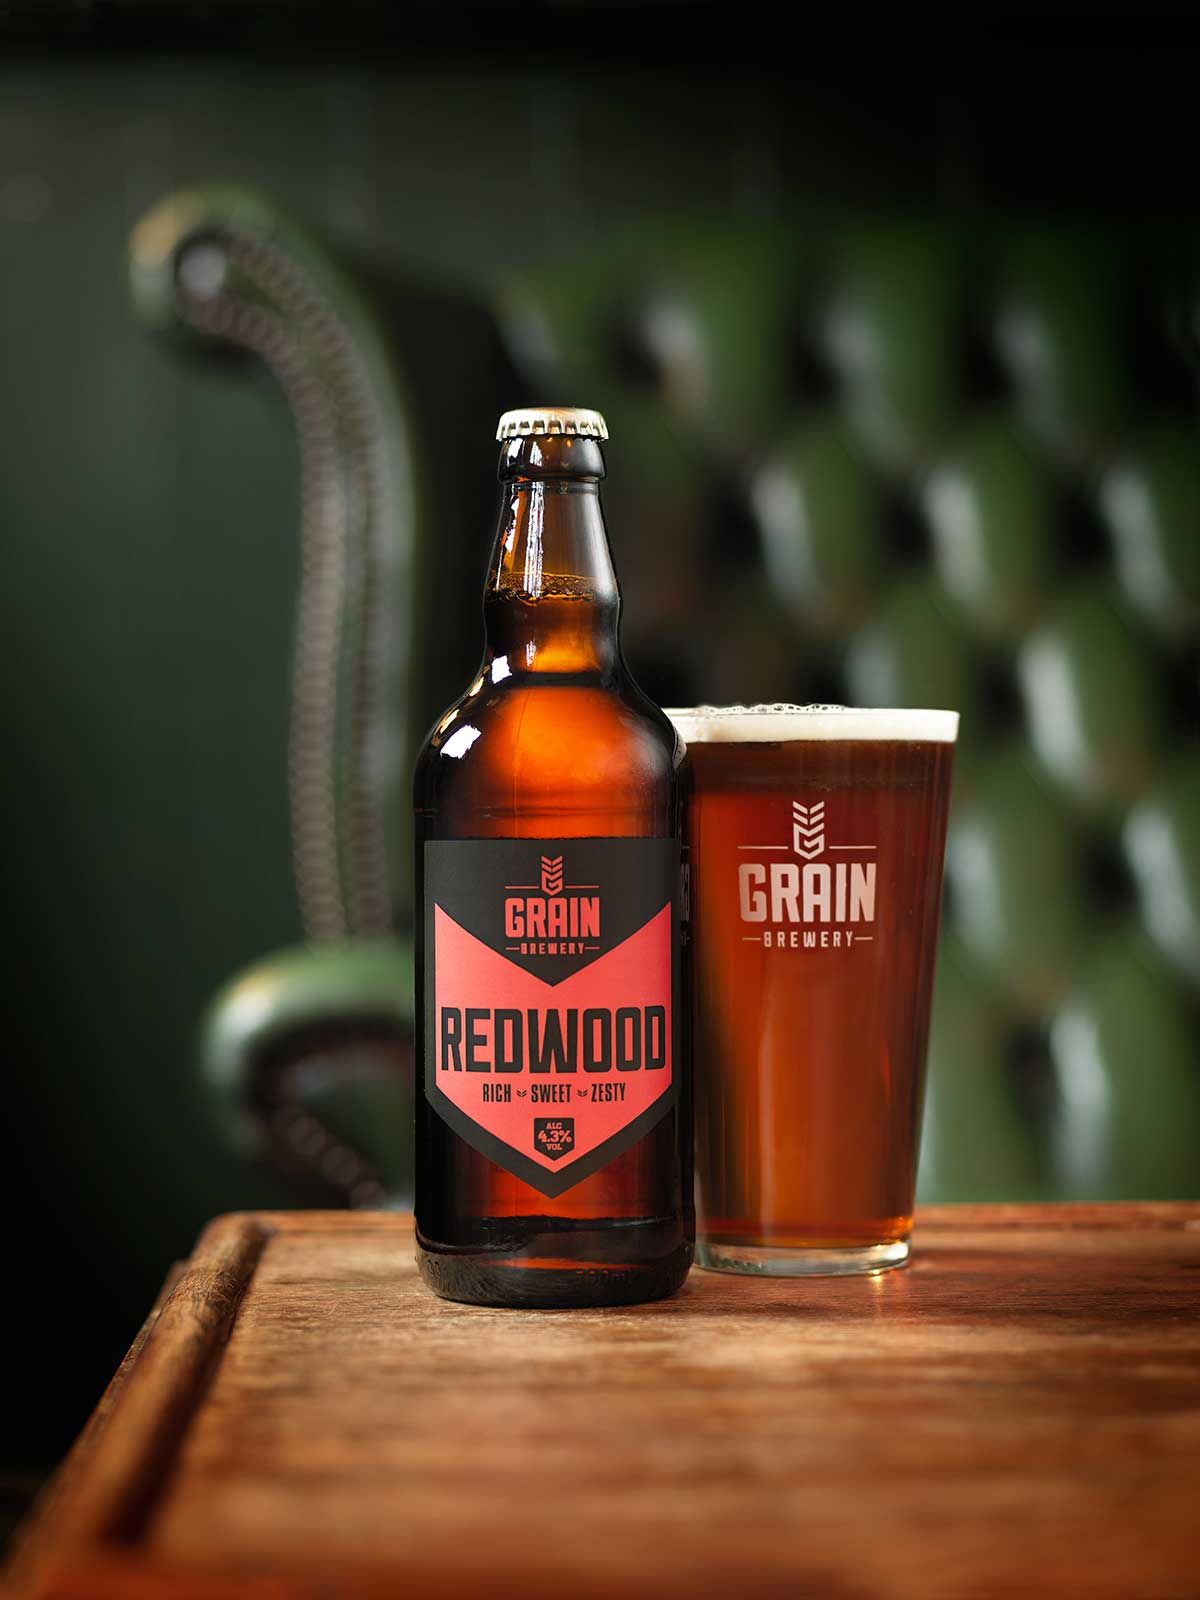 redwwod-beer-bottle-label-design-branding-grain-brewery-norwich-norfolk.jpg